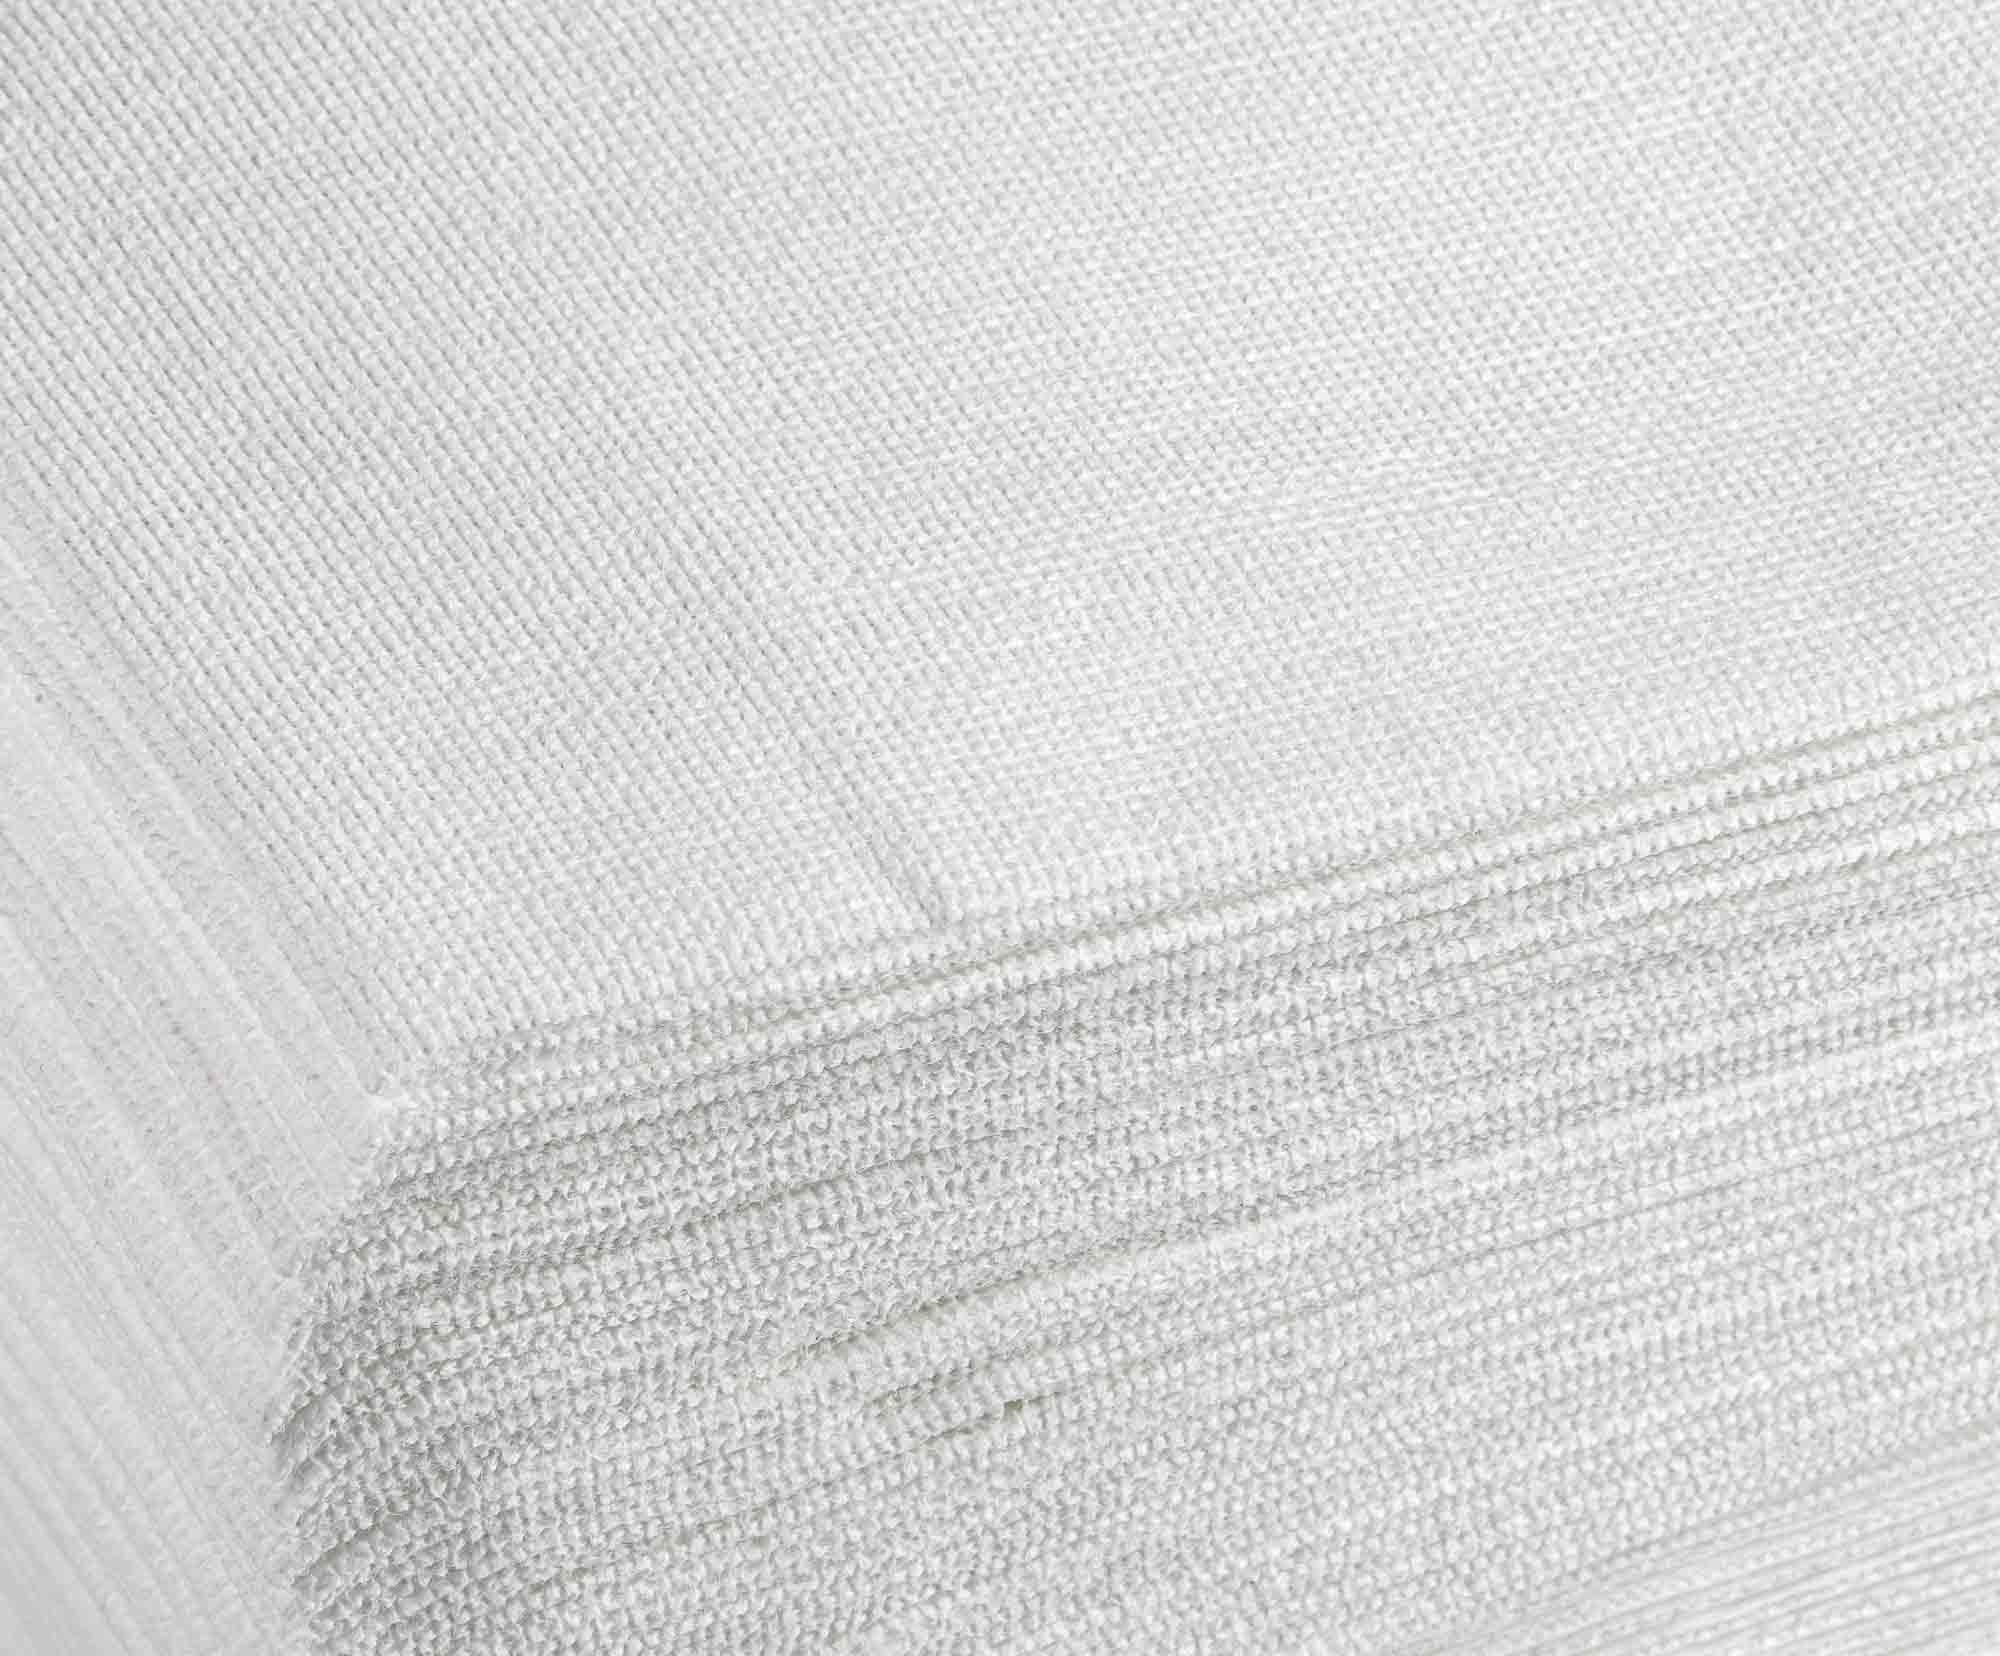 Pro Clean Square Cleaning Cloth closeup of texture - Product photography sample